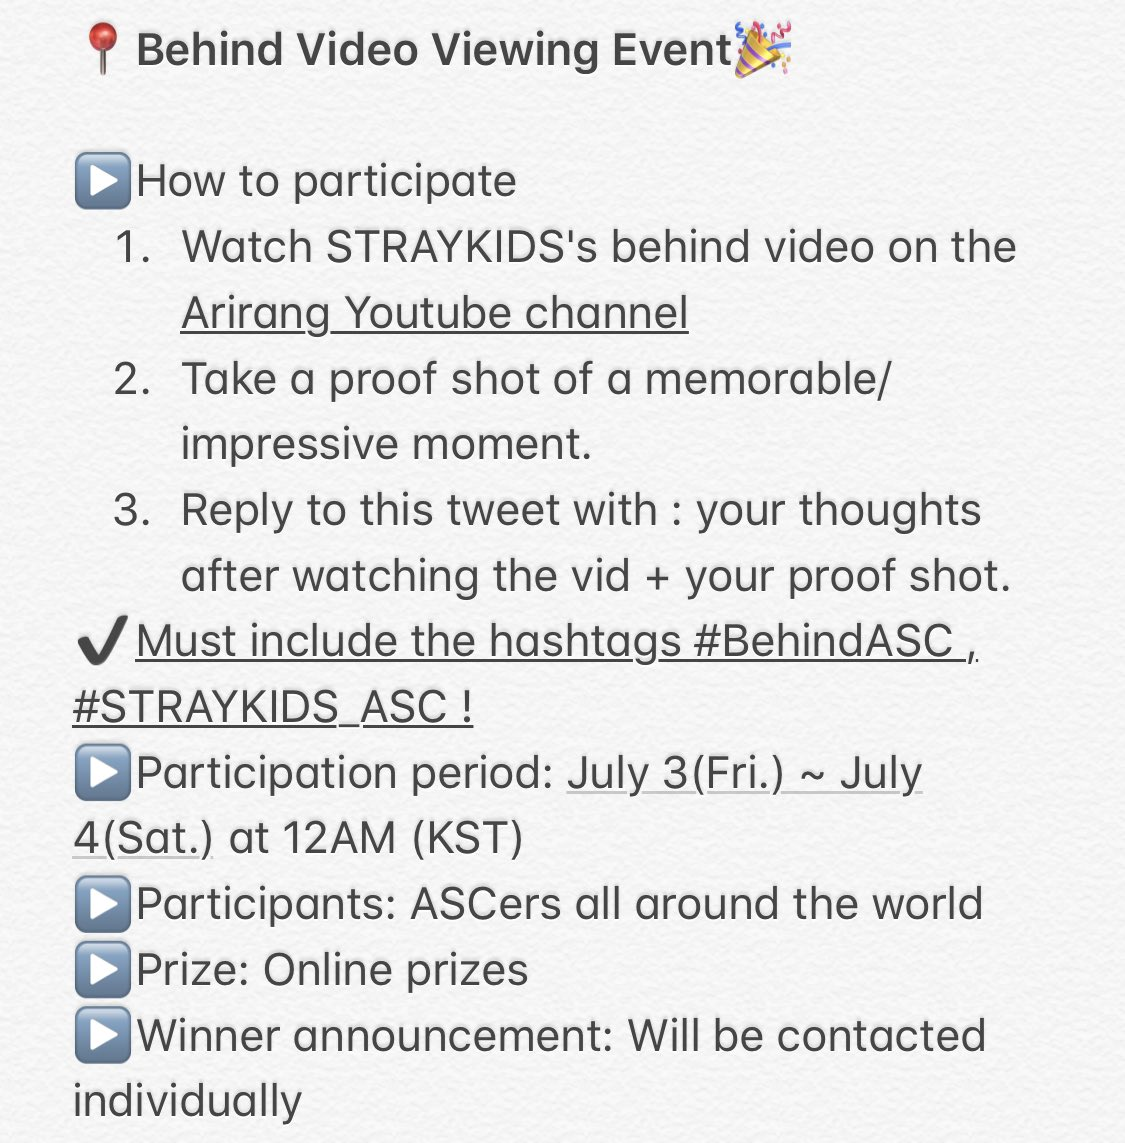 Watch Stray Kids's behind video and participate in the event below!  LINK: https://youtu.be/2doK_pqgKec  #BehindASC #STRAYKIDS_ASC @Stray_Kidspic.twitter.com/rRxBSgJV8X  by ⁷ 니키 ♡'𝕤 주찬 - TBZ KINGS